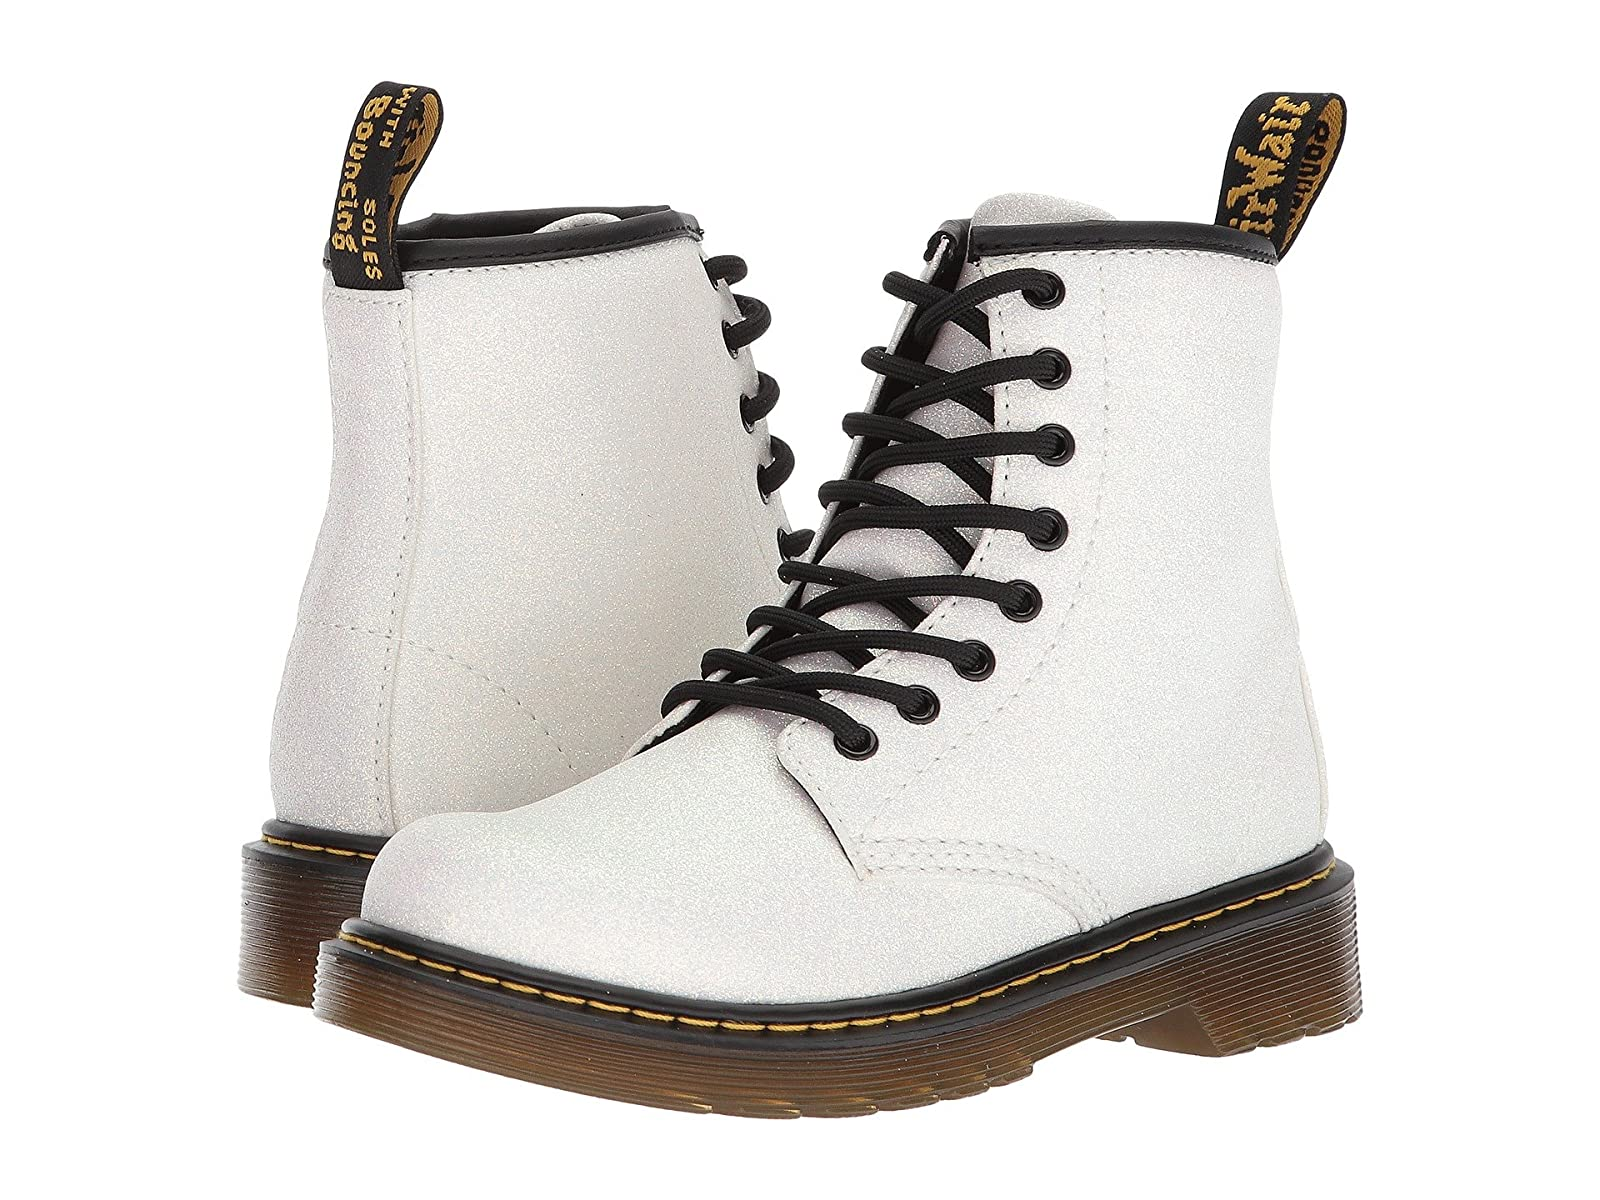 Dr. Martens Kid's Collection 1460 Glitter Junior Delaney Boot (Little Kid/Big Kid)Affordable and distinctive shoes